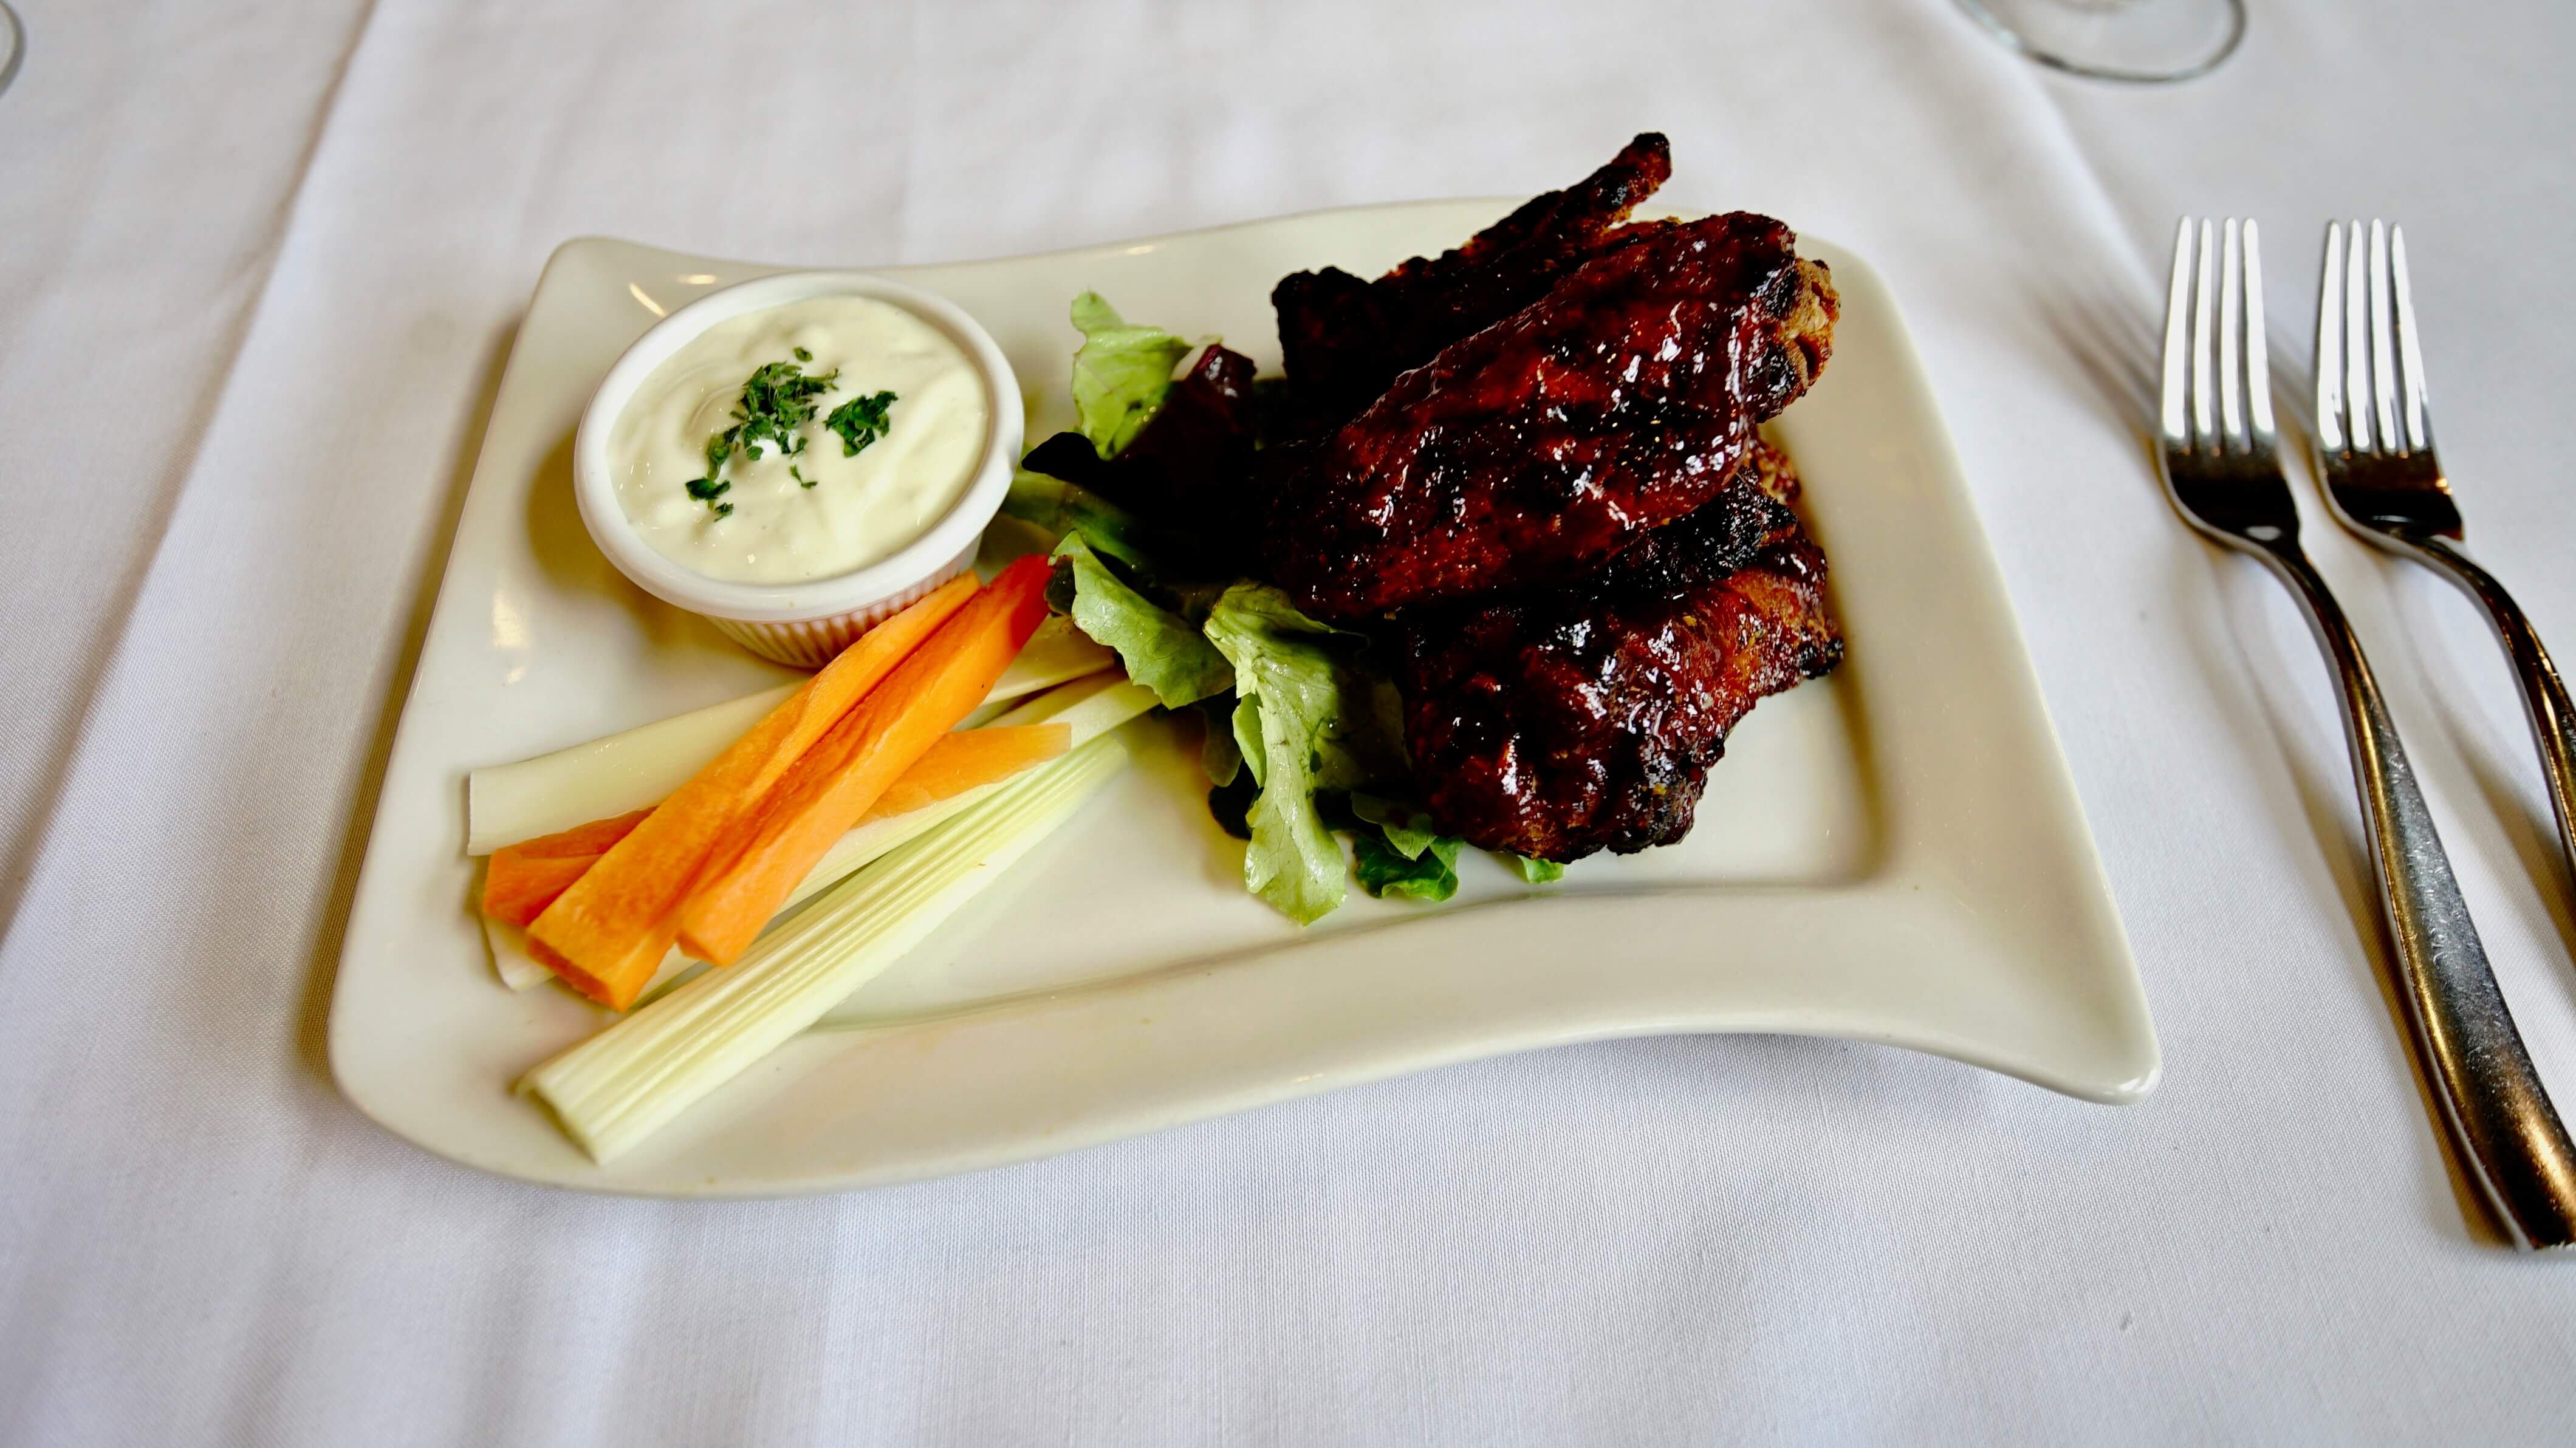 Mediterranean Grill barbecue wings